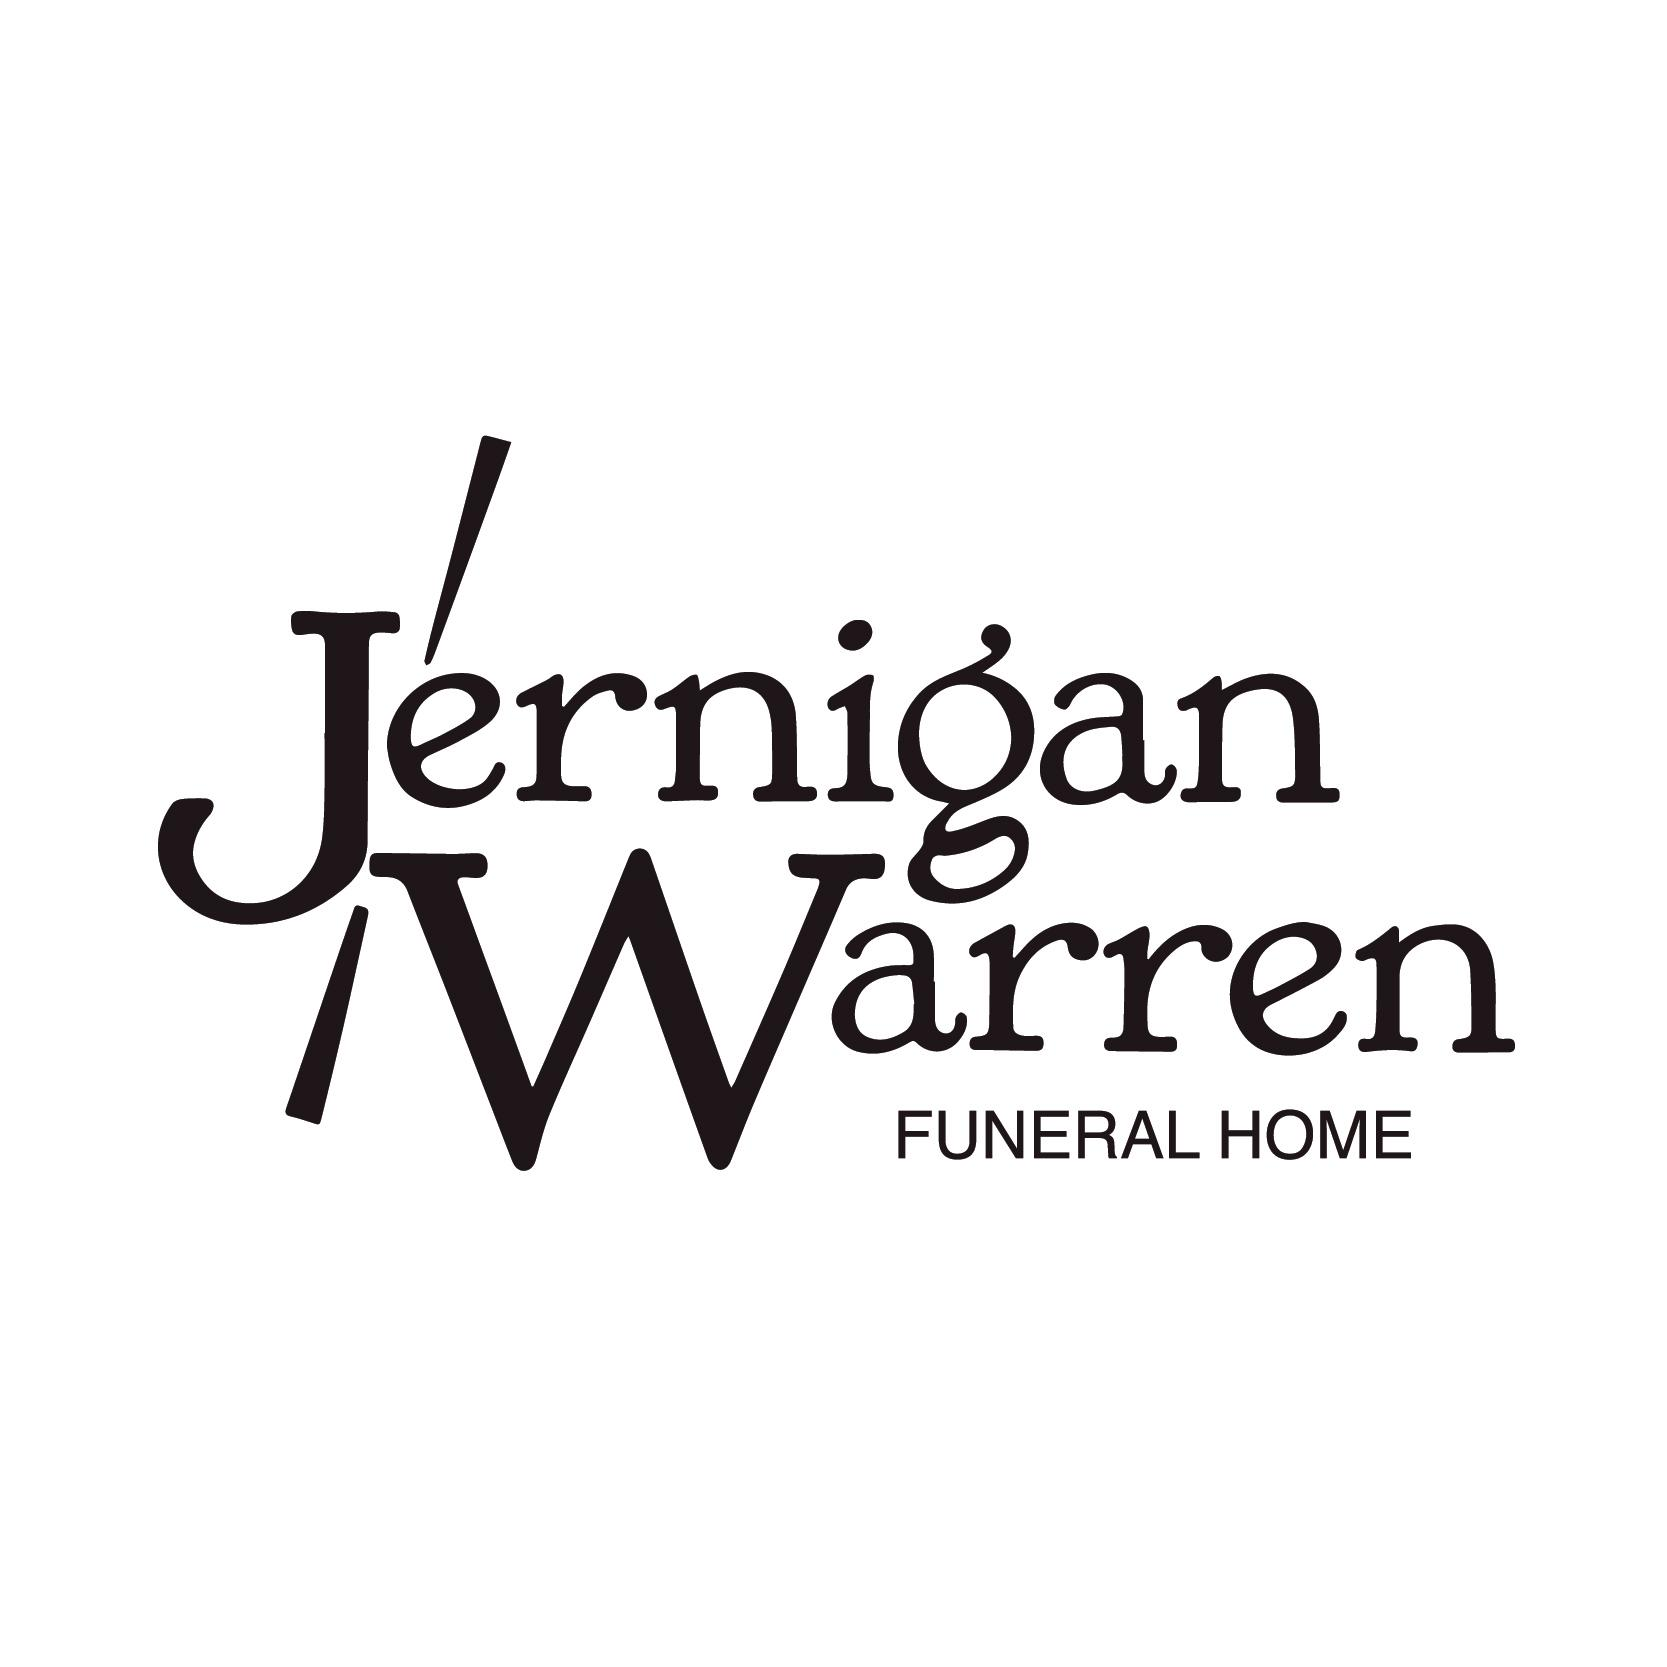 Jernigan-Warren Funeral Home